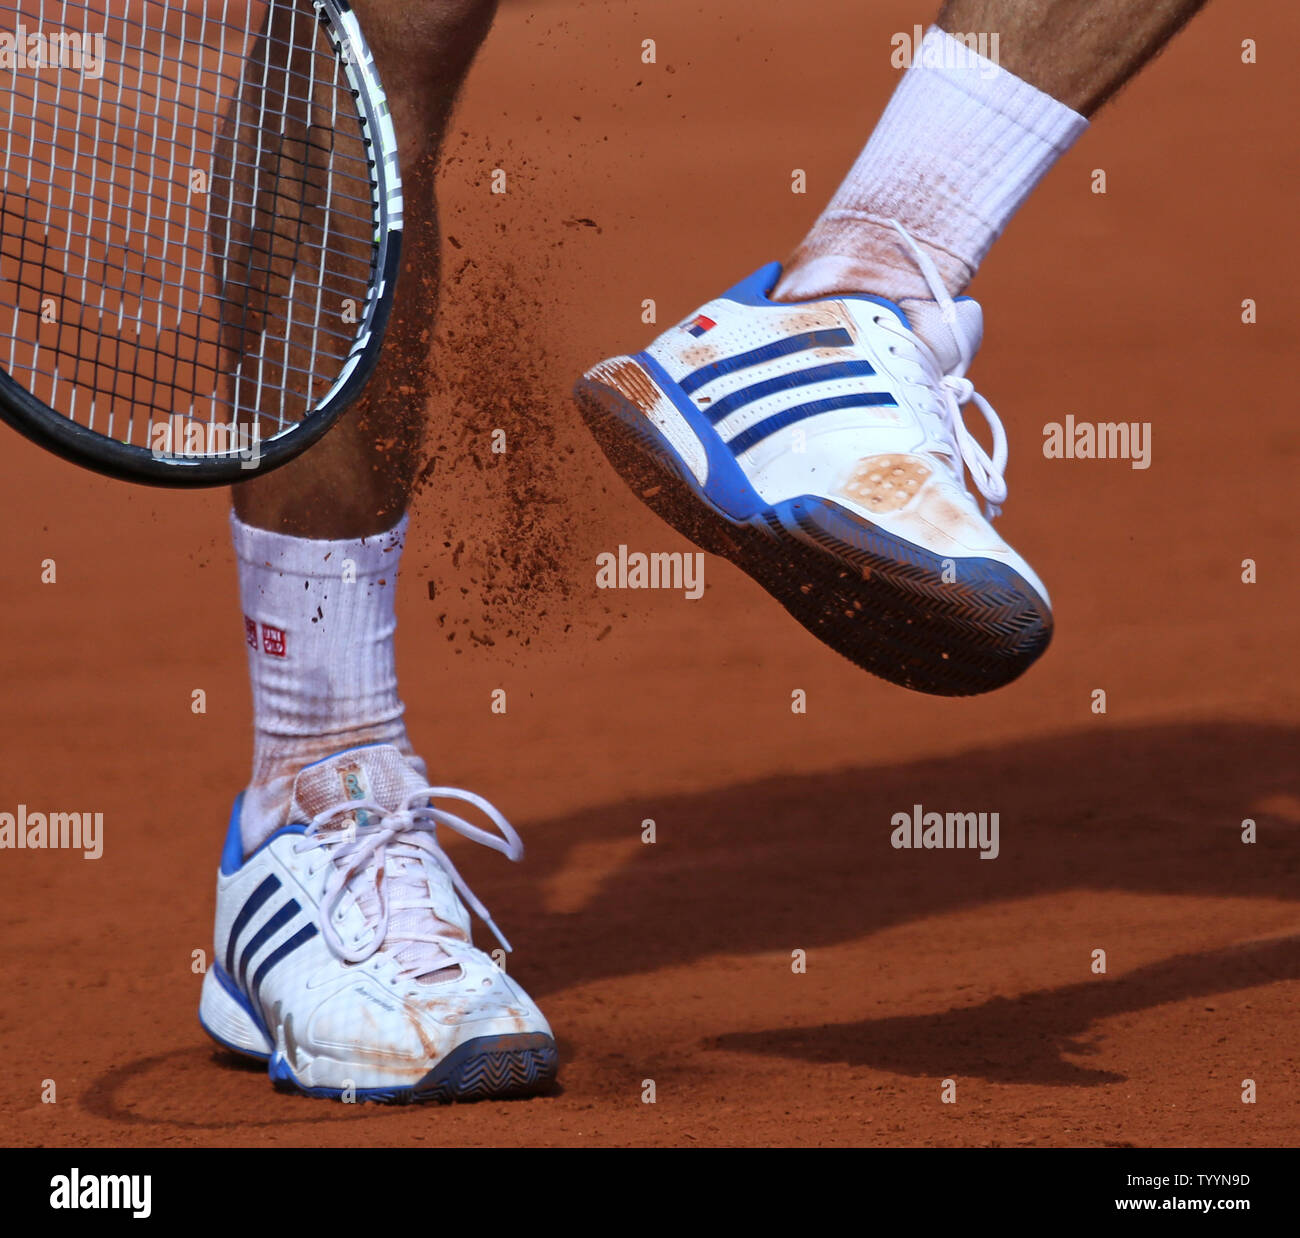 Novak Djokovic Of Serbia Clears The Clay From His Shoes During His French Open Men S Quarterfinal Match Against Rafael Nadal Of Spain At Roland Garros In Paris On June 3 2015 Djokovic